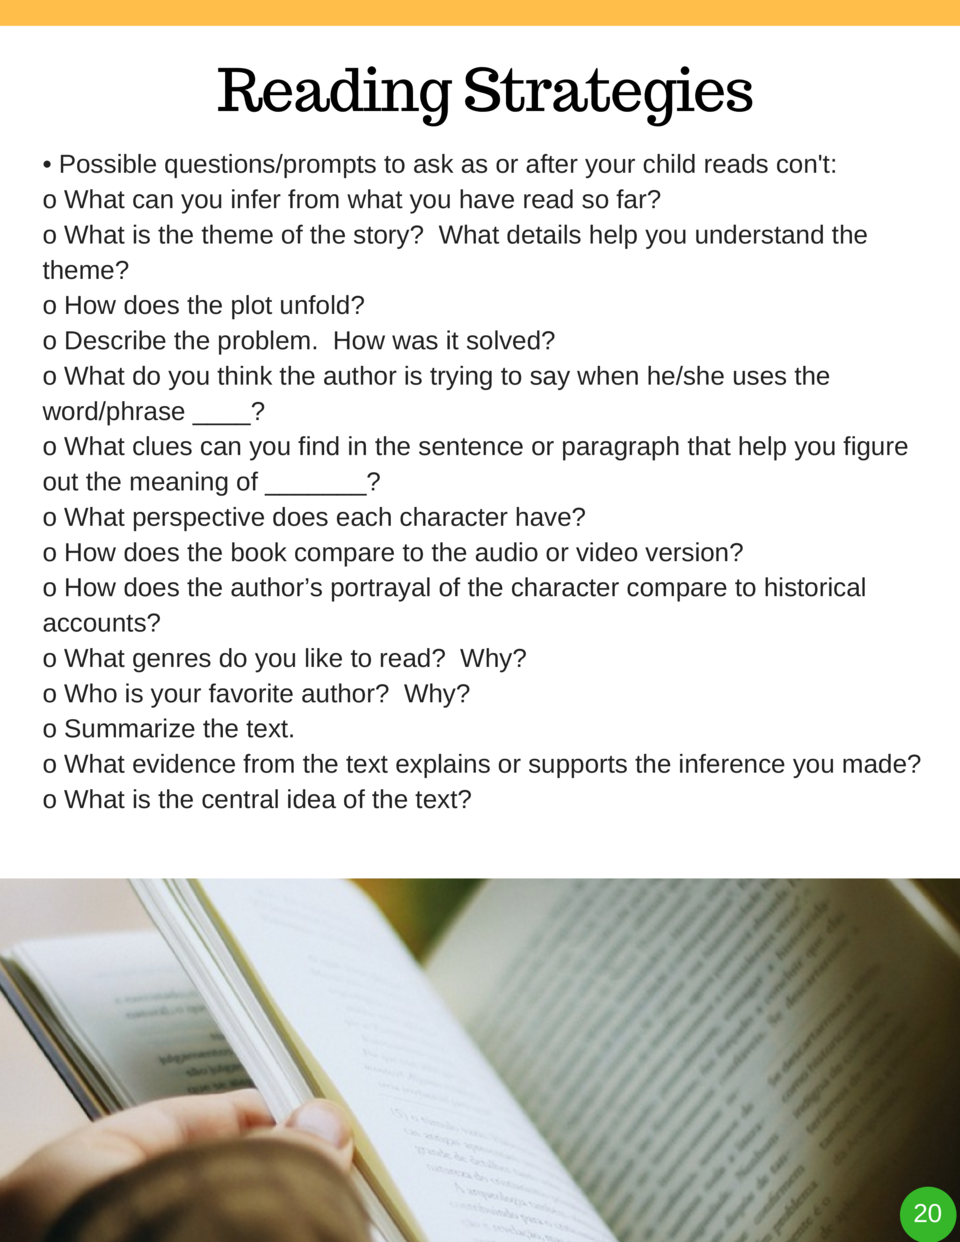 Reading Strategies     Possible questions prompts to ask as or after your child reads con t  o What can you infer from wha...